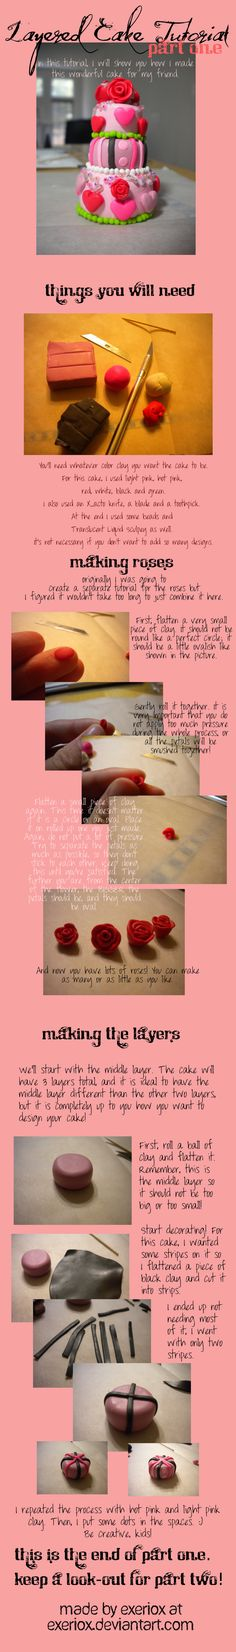 PART 1 Layered Cake Tutorial - by ~exeriox on deviantART